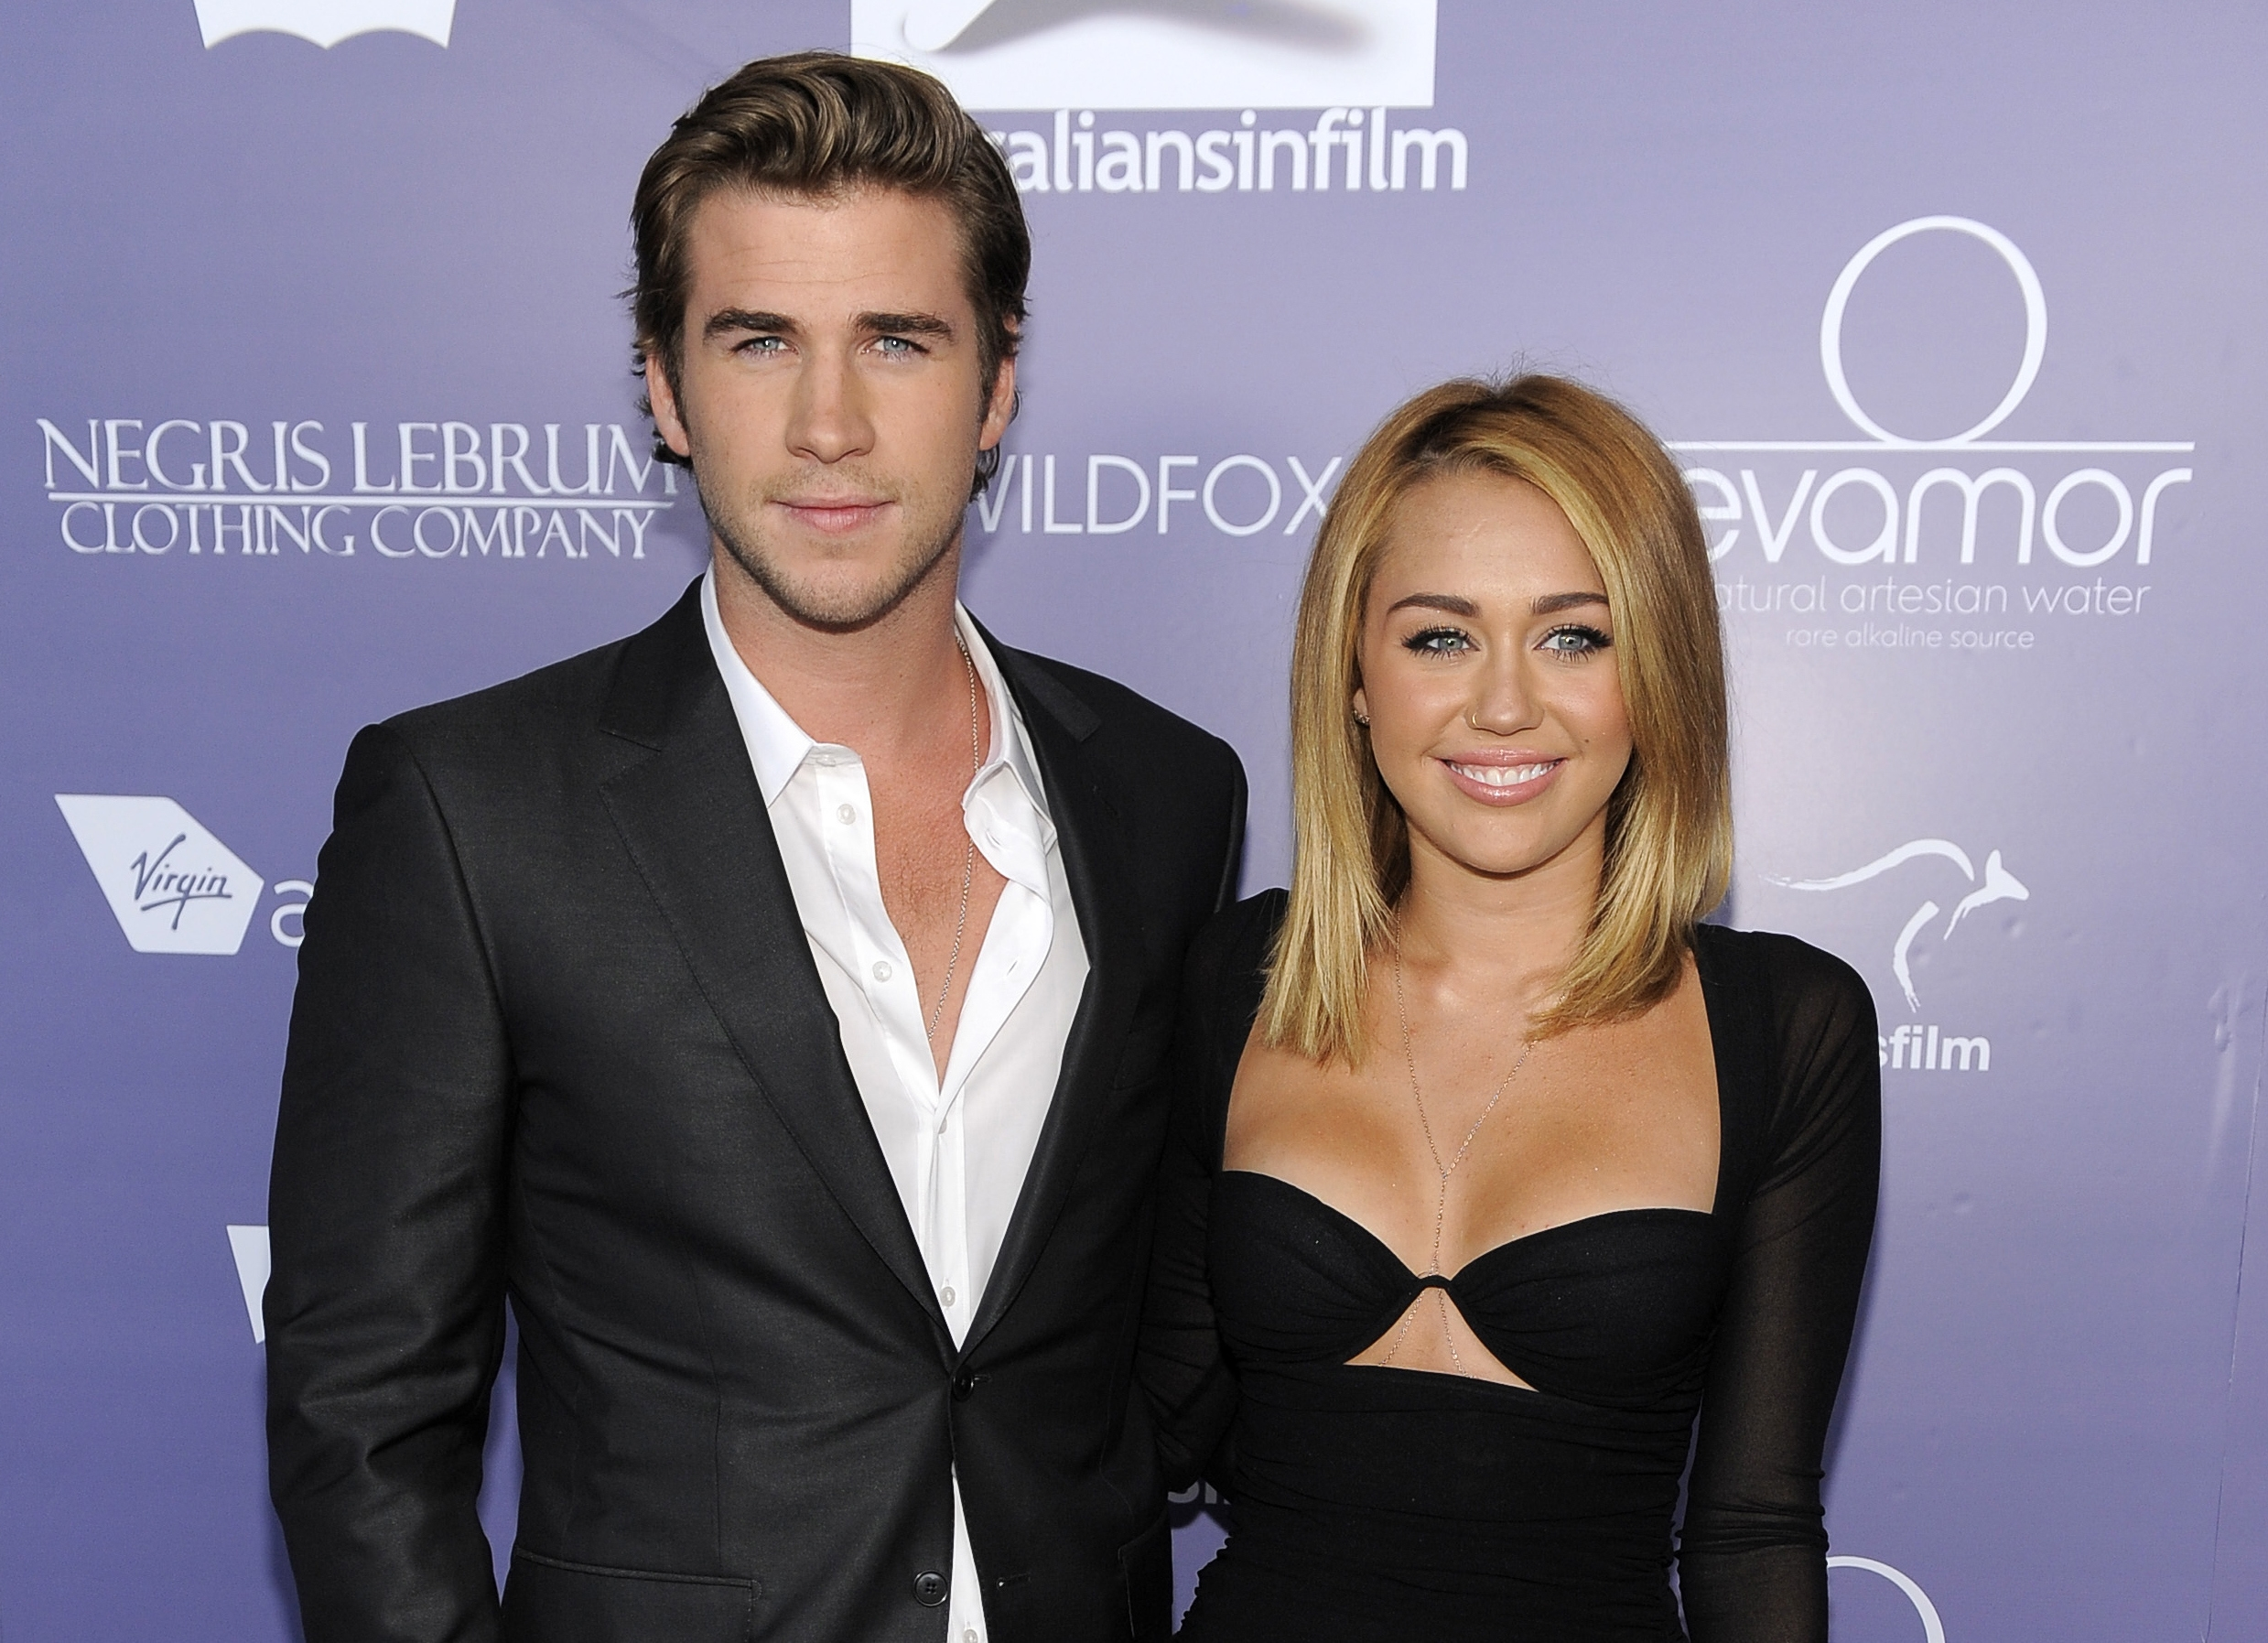 Actor Liam Hemsworth and his fiancé, Miley Cyrus, shown here in June 2012, have split up.